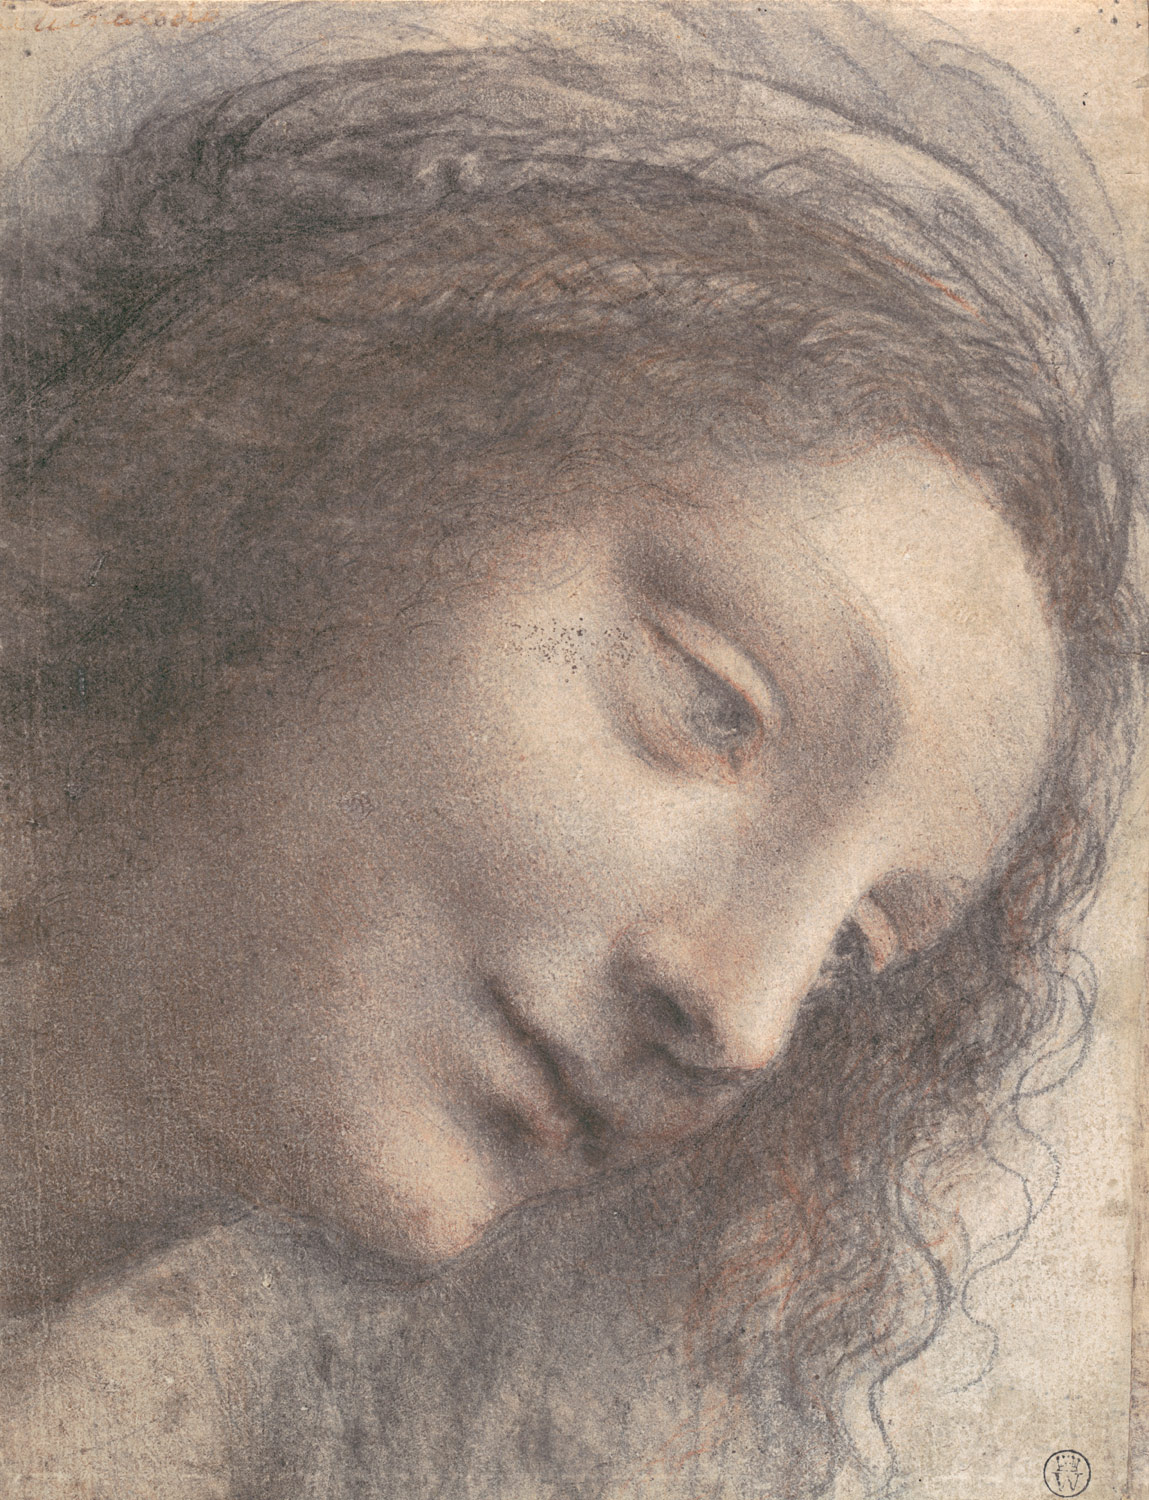 Leonardo da Vinci charcoal drawing  Image via    The MET